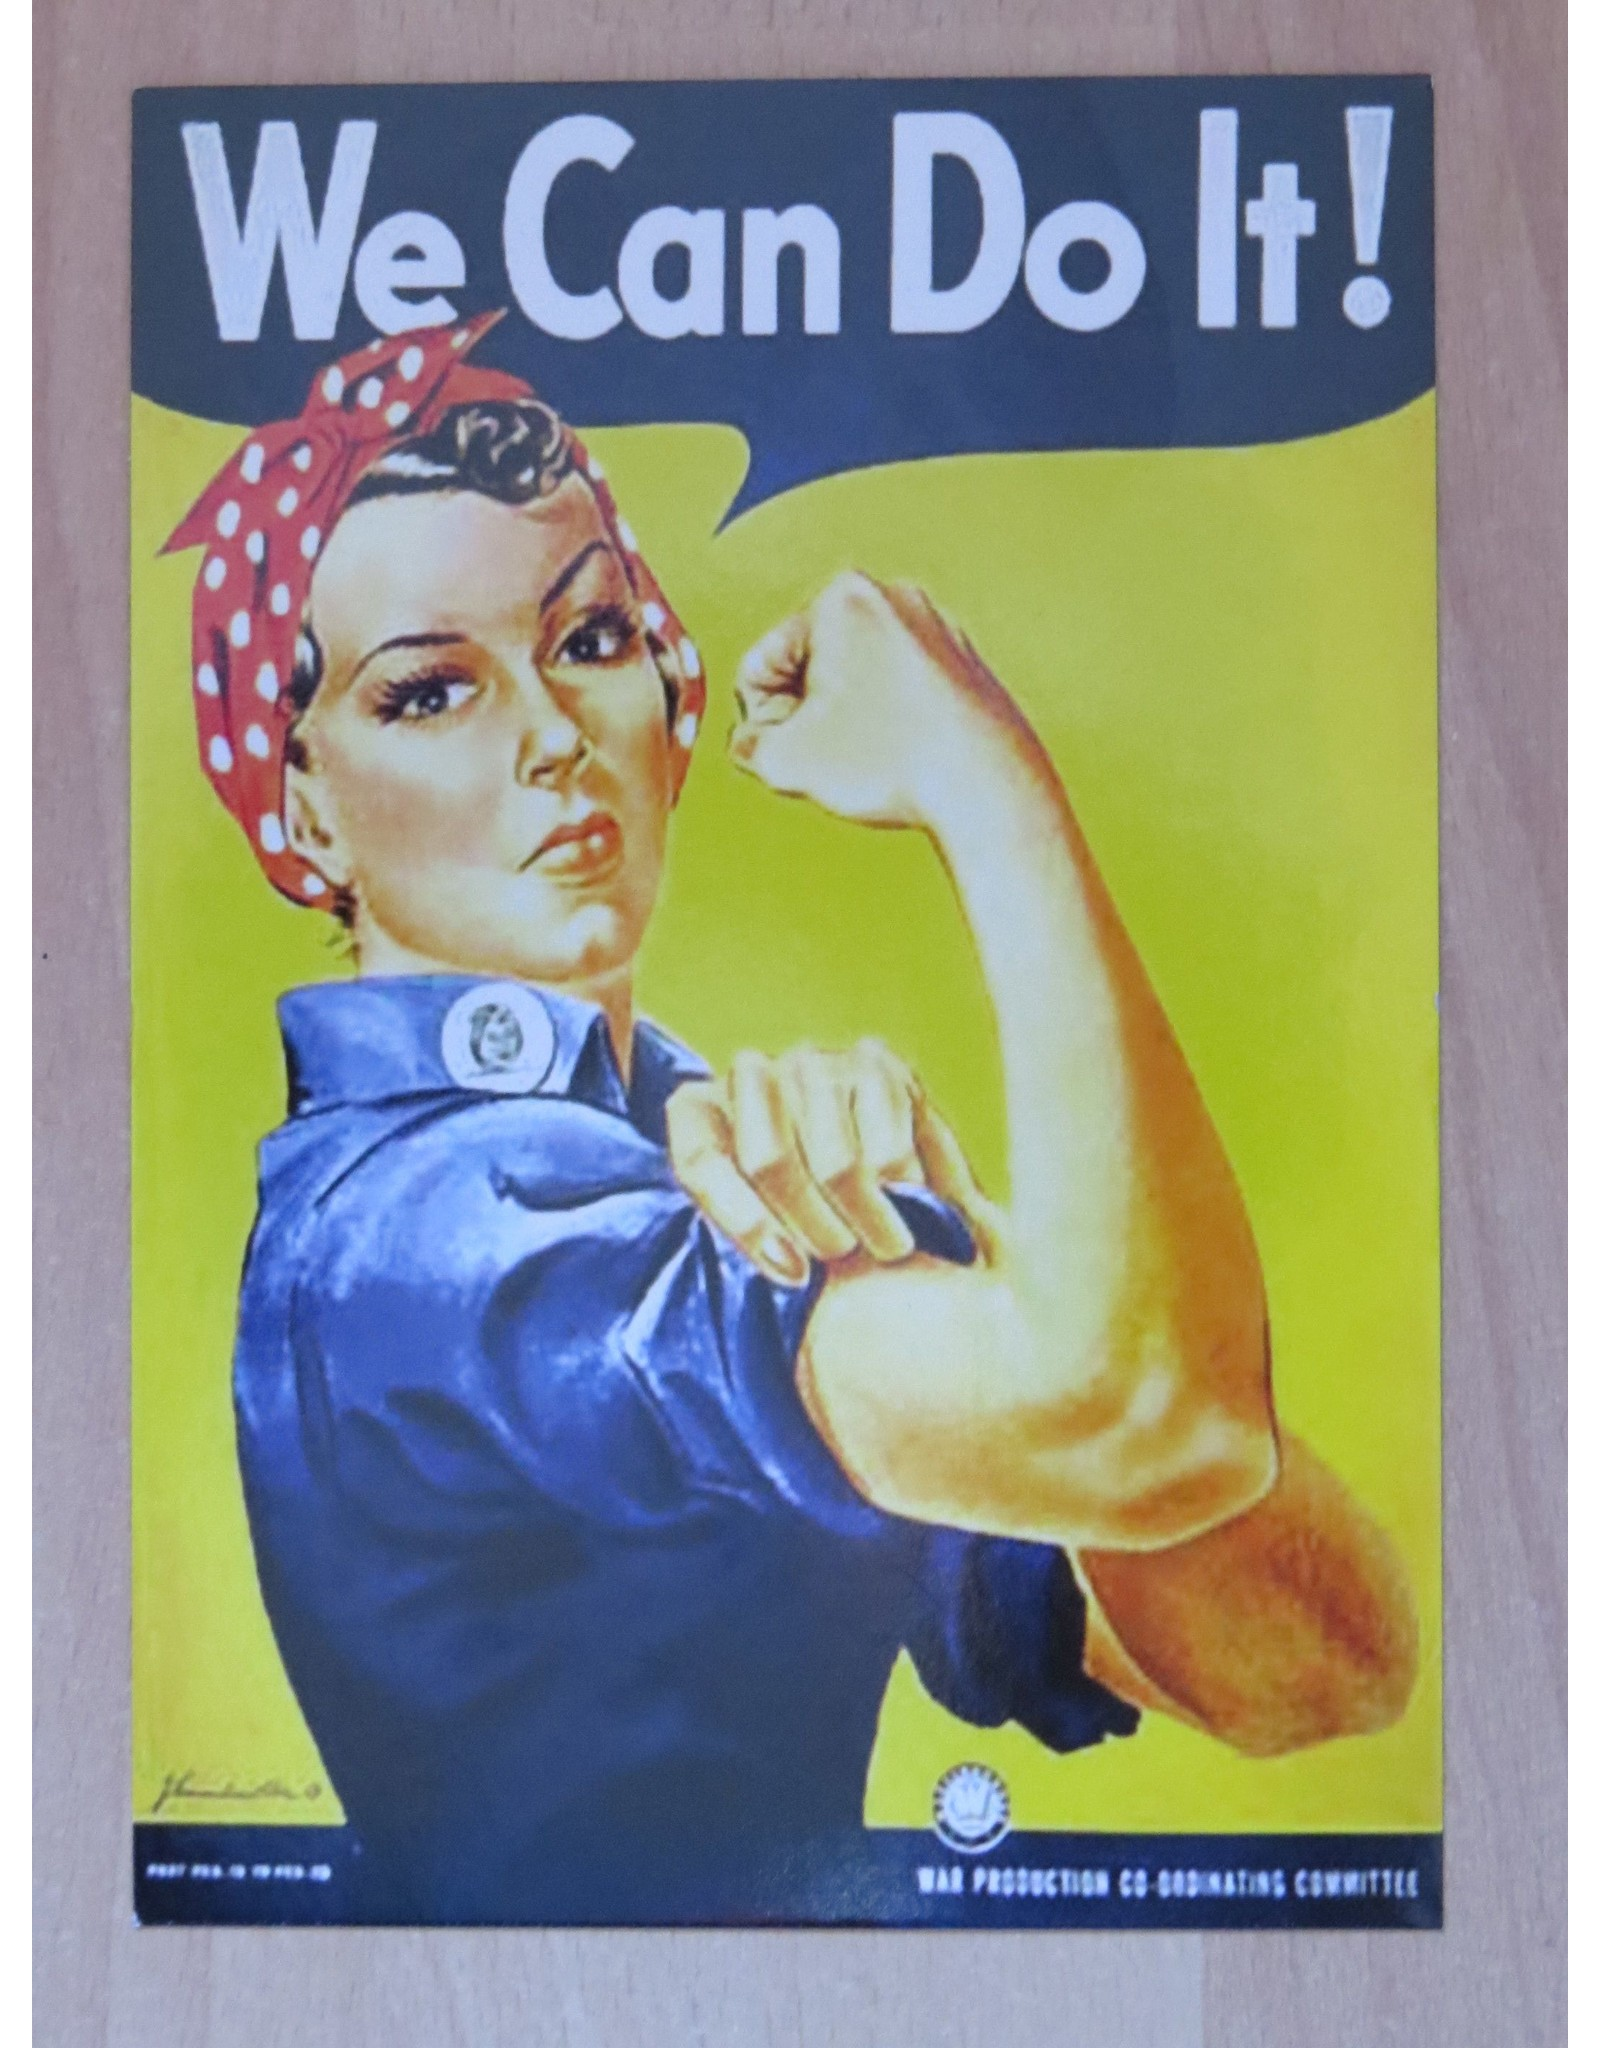 Card - We can do it!